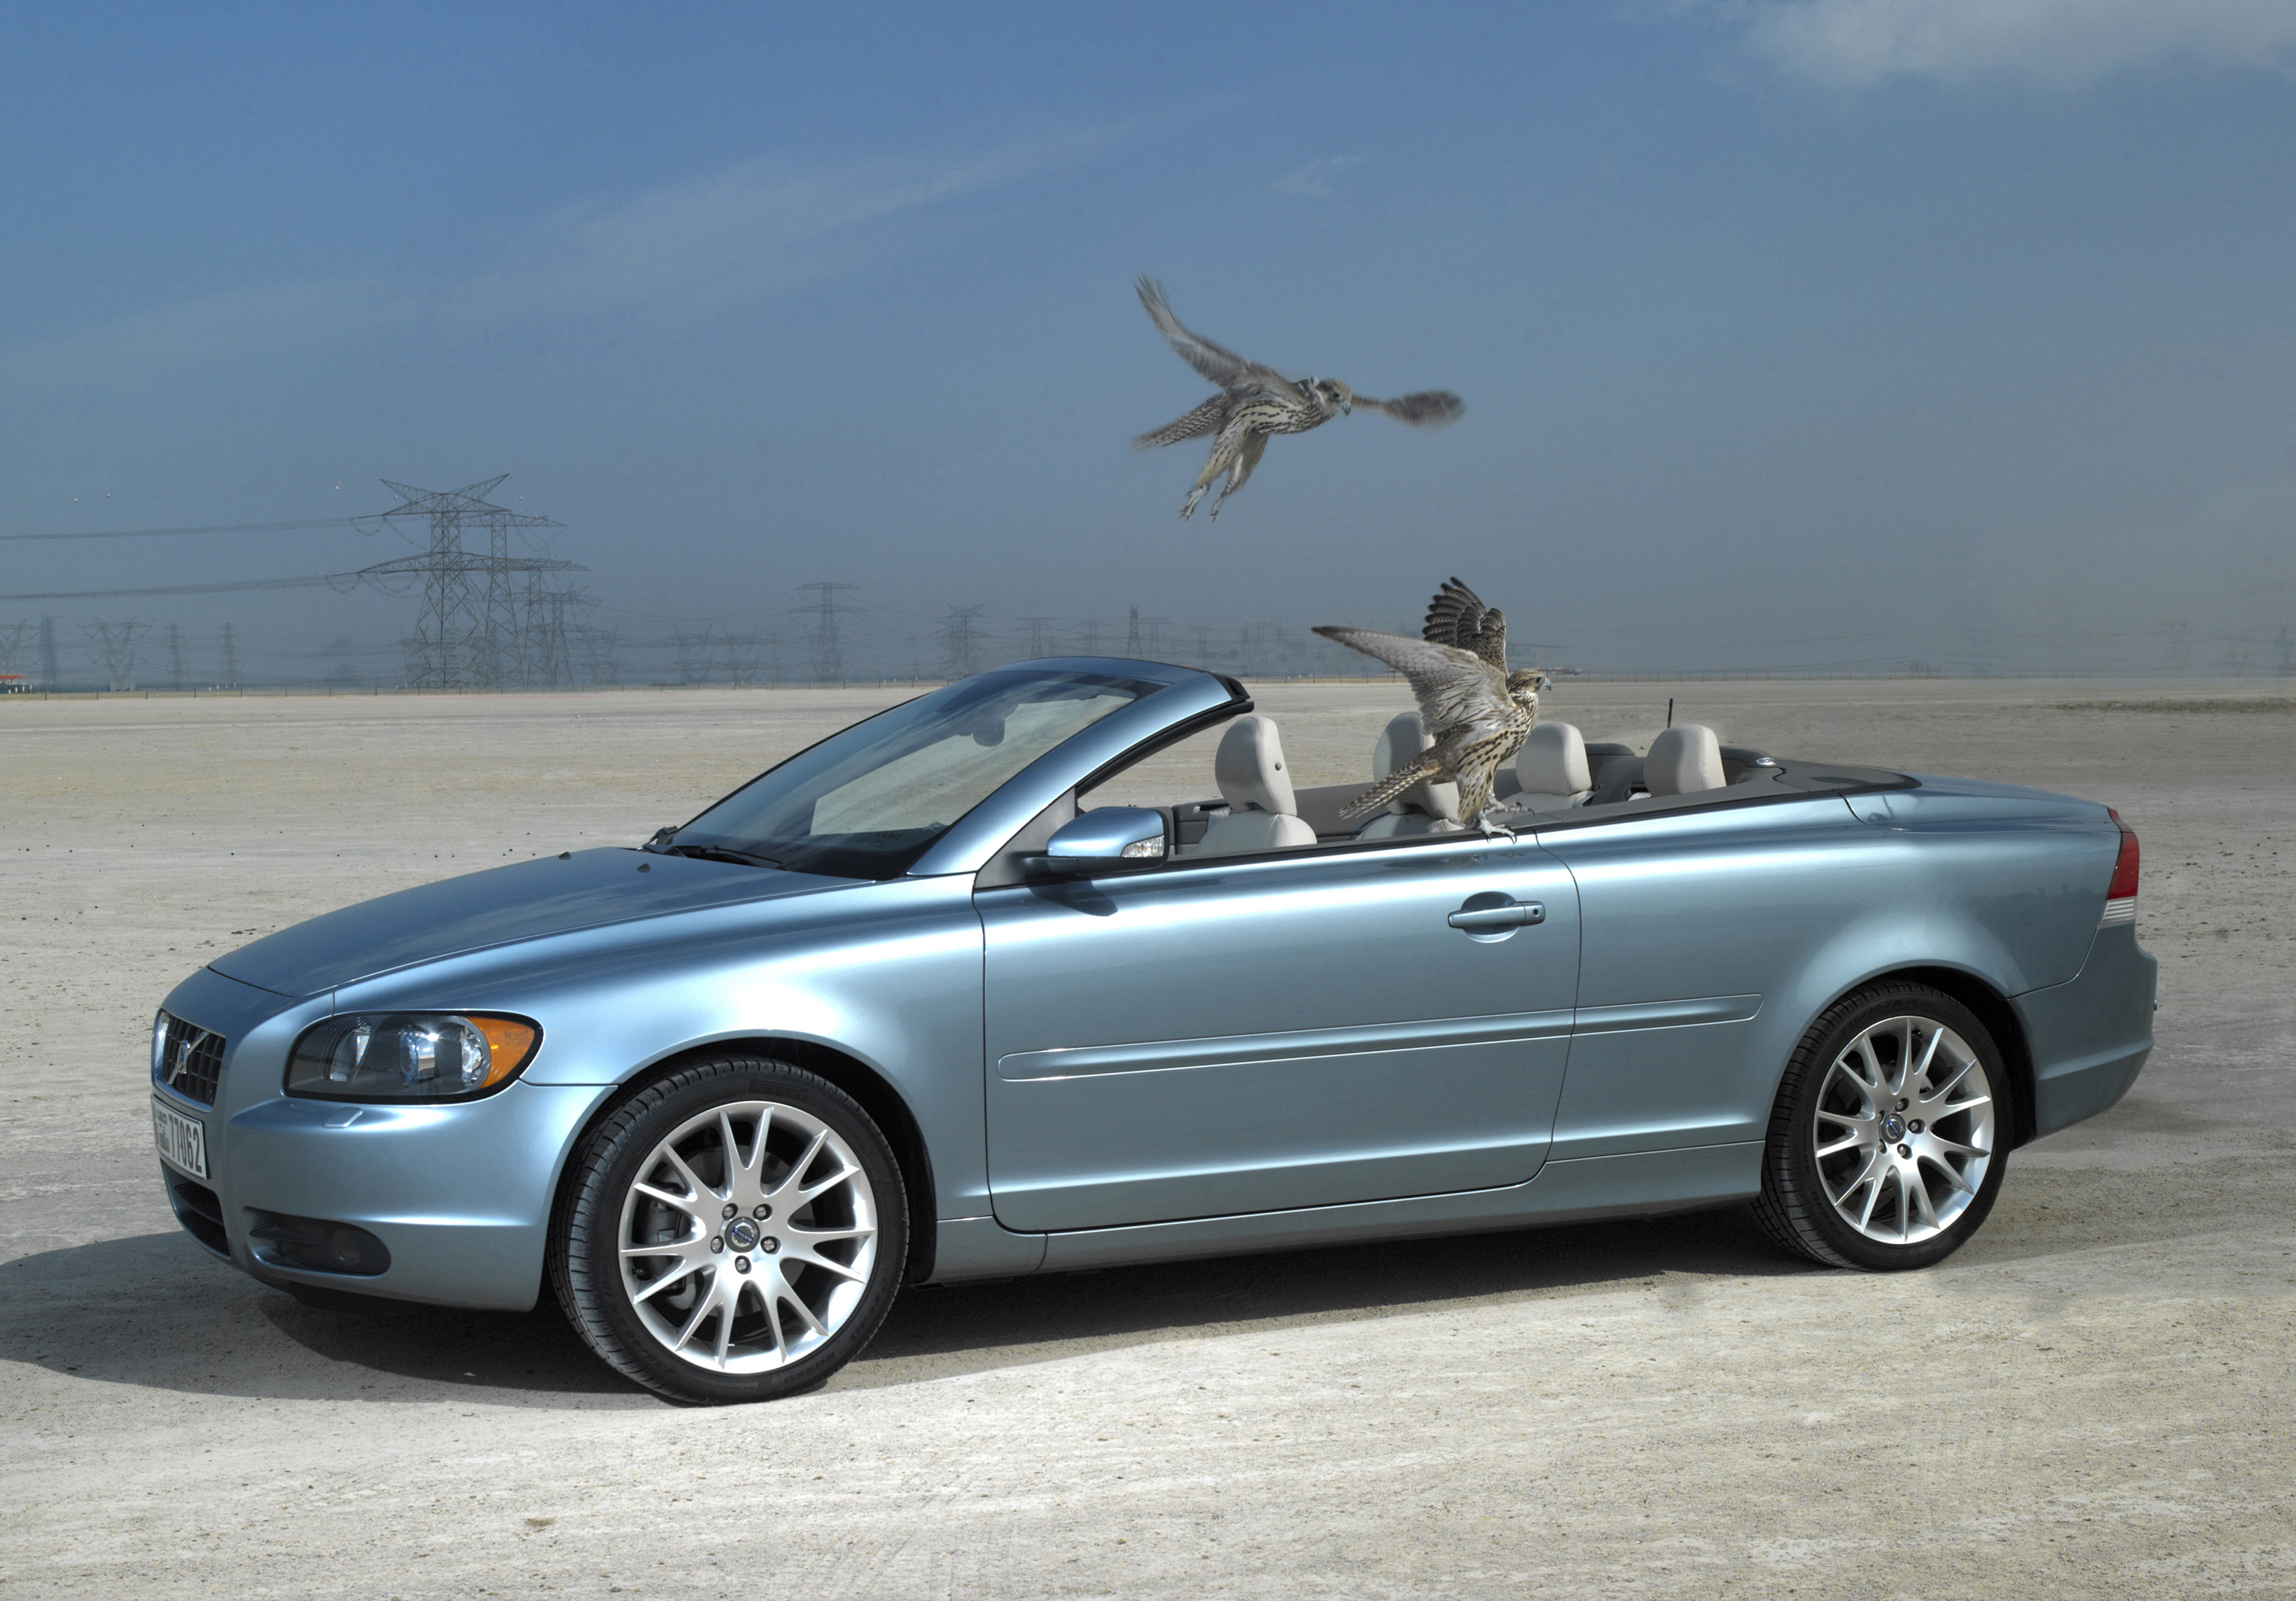 v safety equipment features convertible and parkers accessories convertibles review volvo